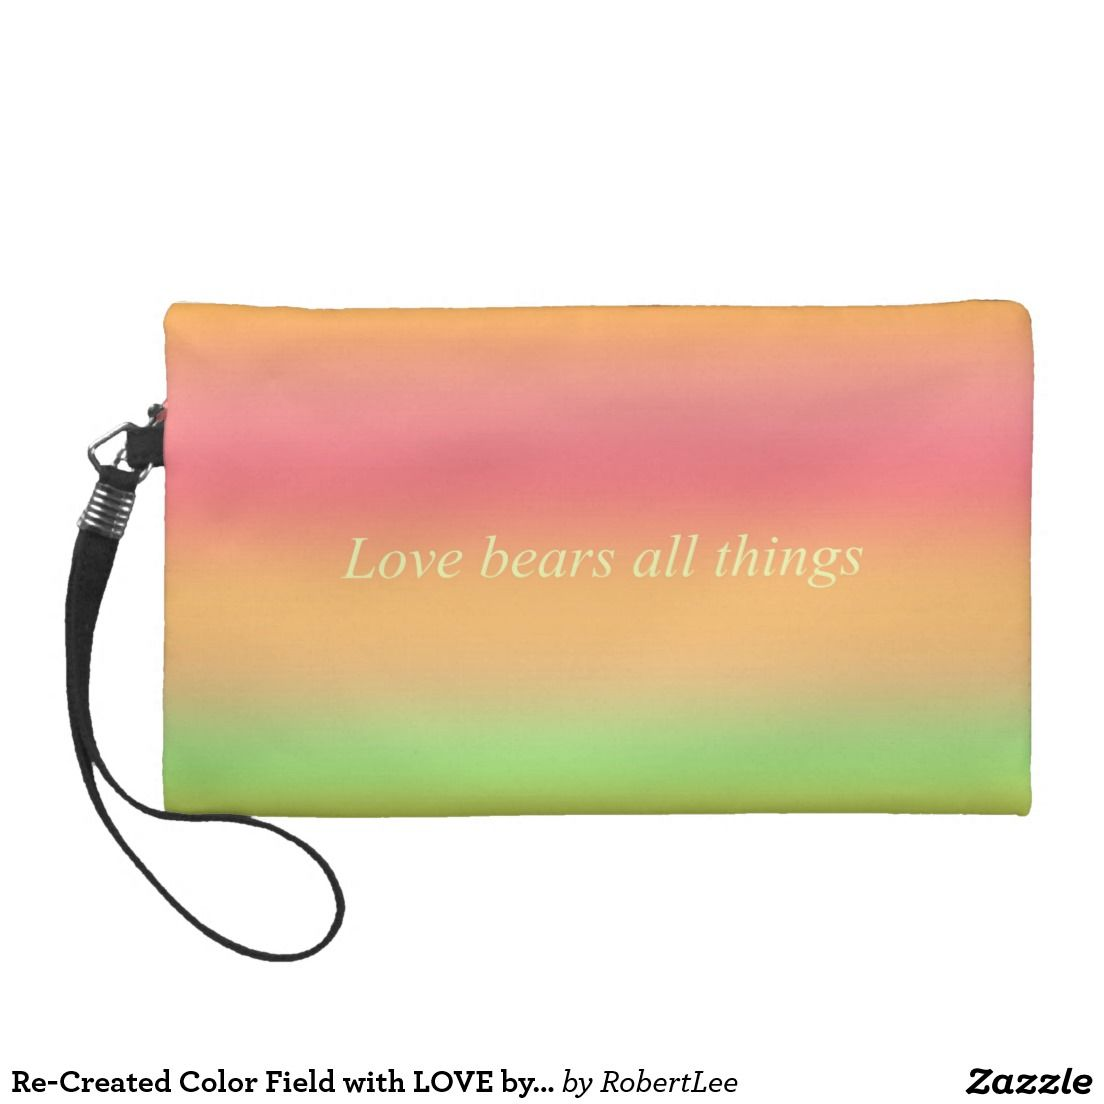 Re-Created Color Field with LOVE by Robert S. Lee Wristlet #Robert #S. #Lee#love #Scripture #Bible #Jesus #Christ #Lord #God #art #graphic #design #colors #bag #wristlet #purse #ladies #girls #women #love #style #fashion #accessory #for #her #gift #want #need #love #customizable